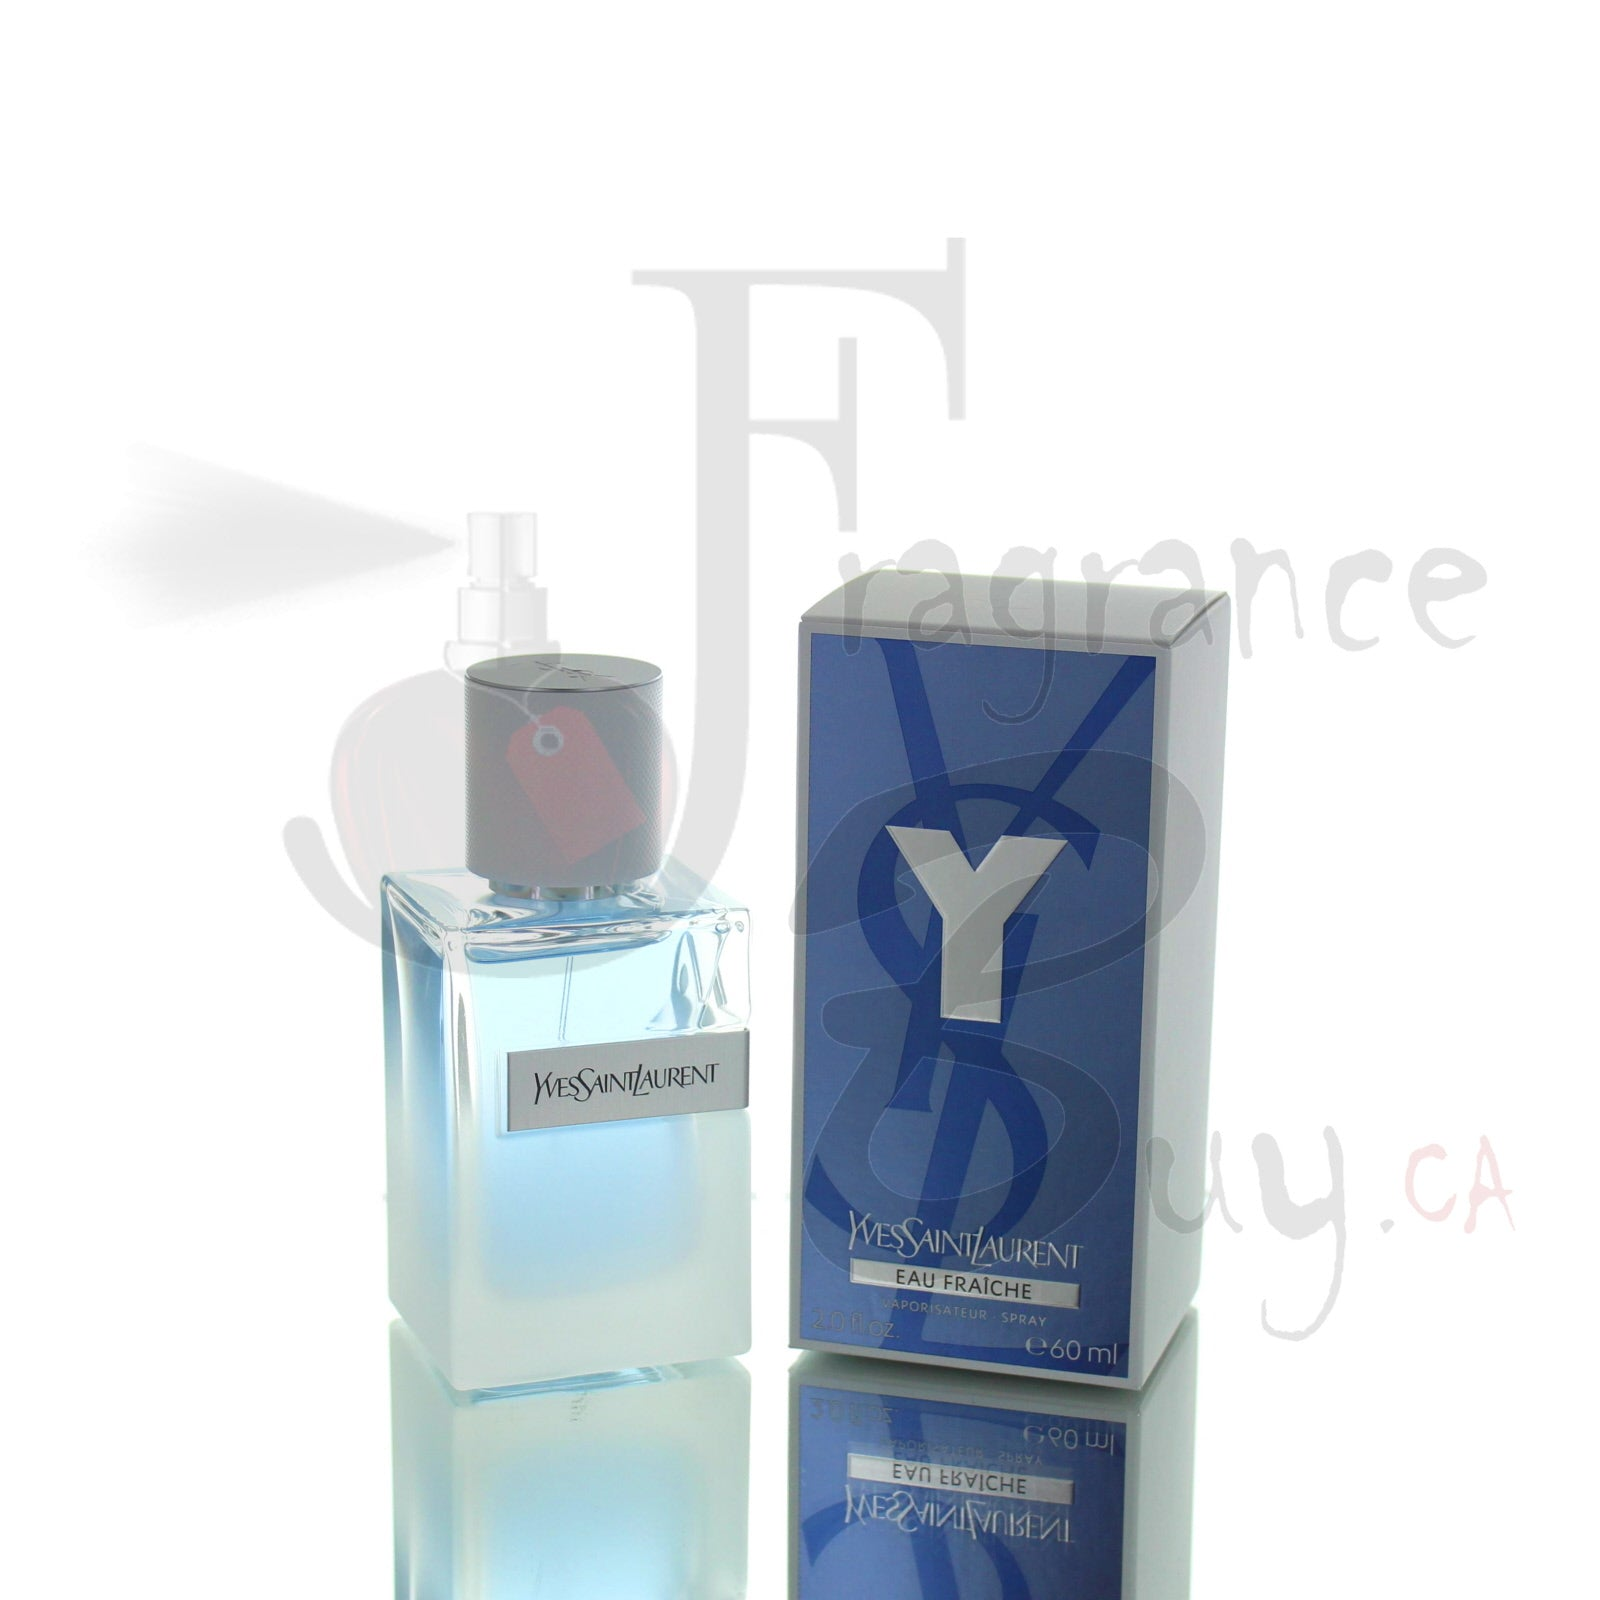 Y by YSL Eau Fraiche Cologne Edition (2020) For Man